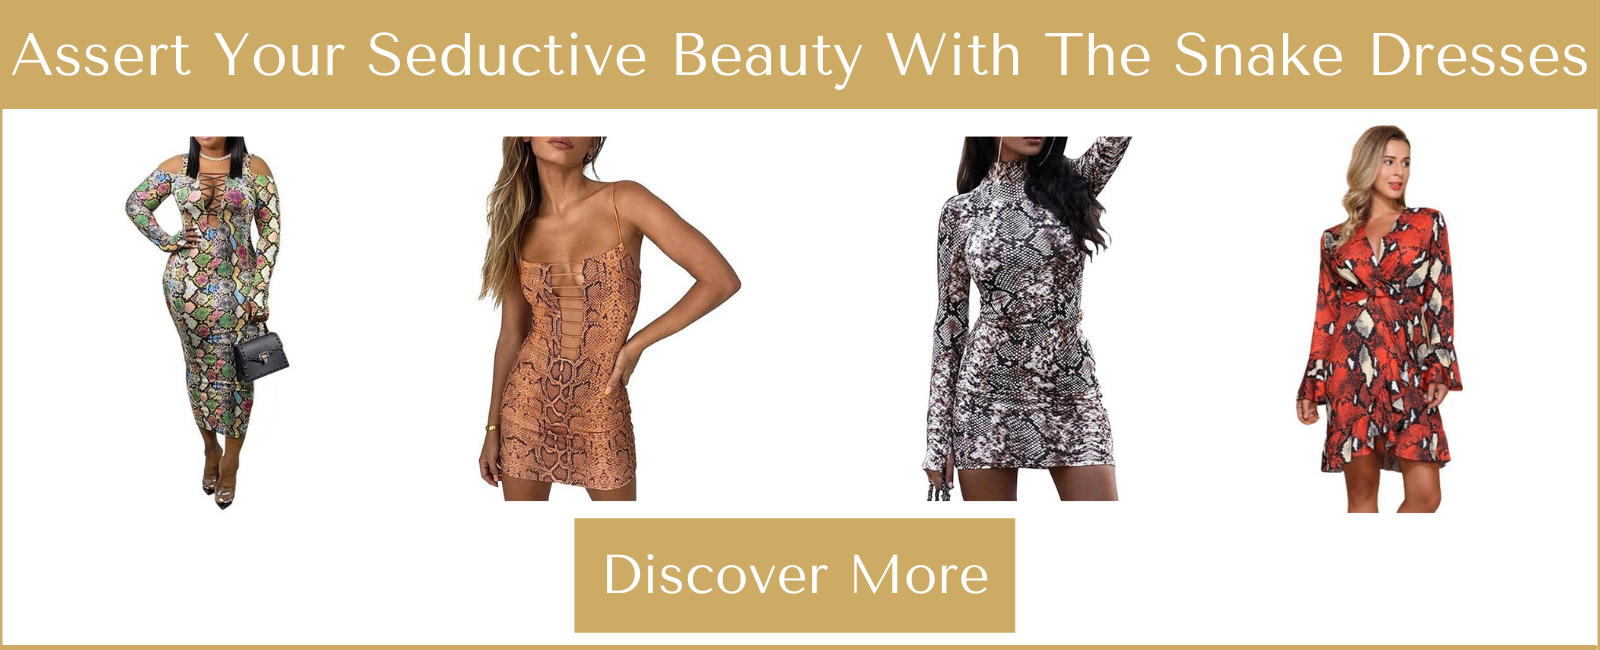 Assert Your Seductive Beauty With The Snake Dresses